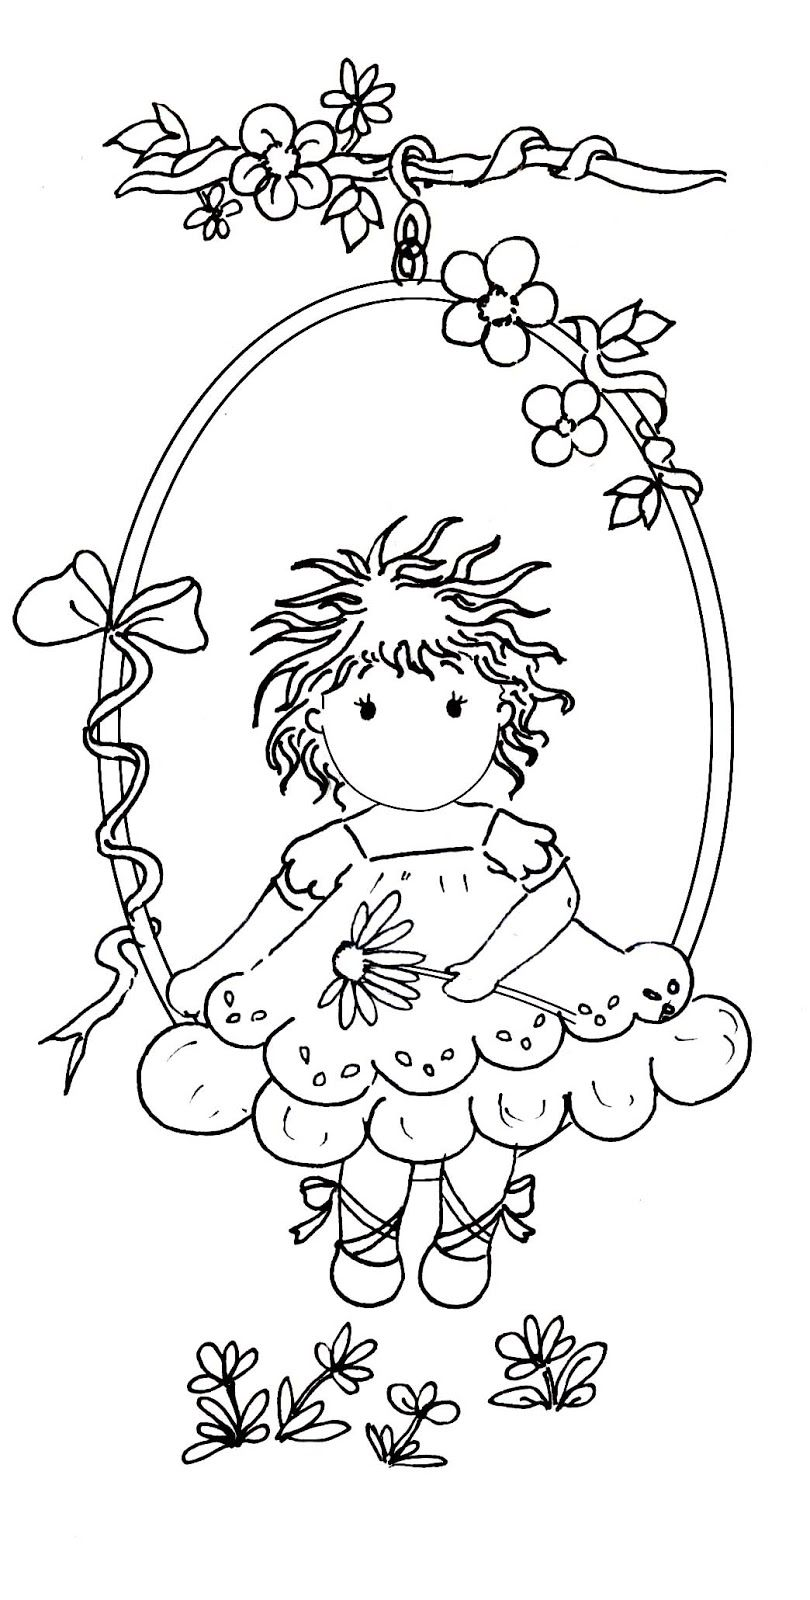 printable stamp coloring pages - photo#18